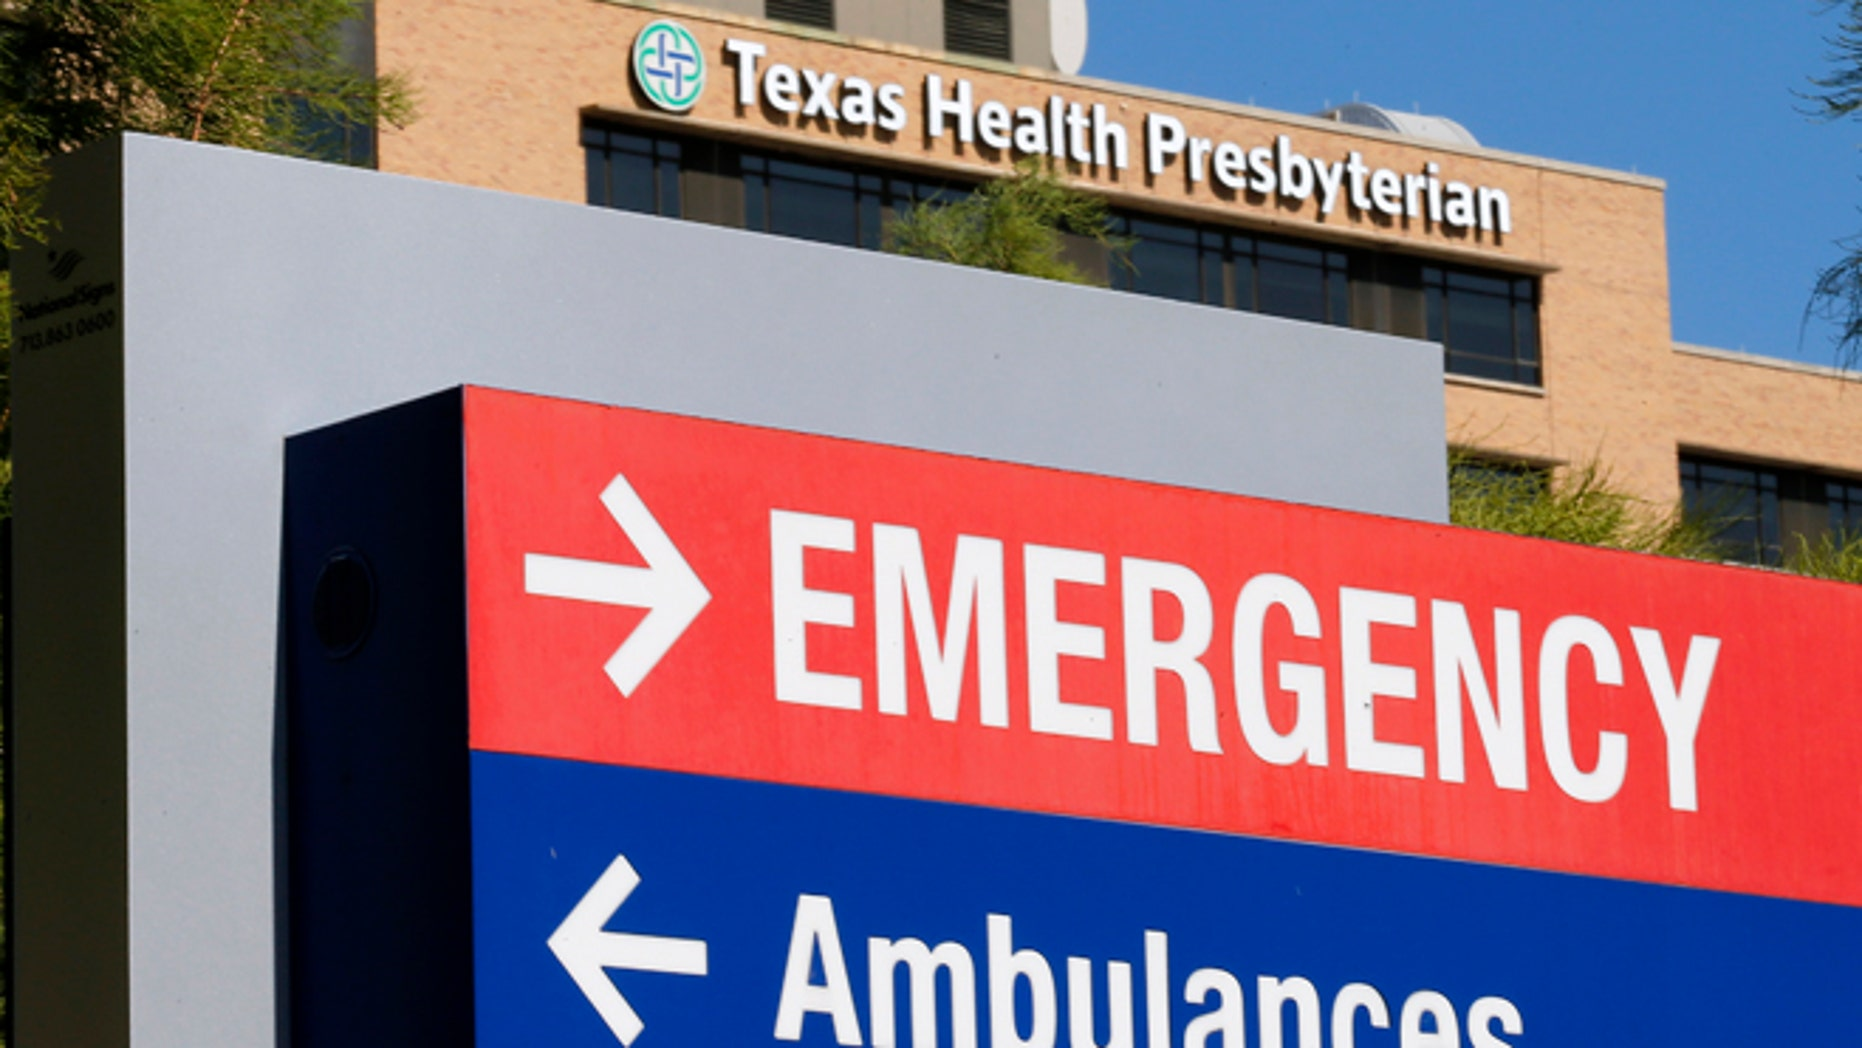 A general view of the Texas Health Presbyterian Hospital is seen in Dallas, Texas, October 4, 2014. U.S. health officials have fielded inquiries about as many as 100 potential cases of Ebola since the first patient with the deadly virus was detected in the country, but no new infections have been identified, a senior health official said on Saturday. REUTERS/Jim Young (UNITED STATES - Tags: HEALTH DISASTER) - RTR48XMJ